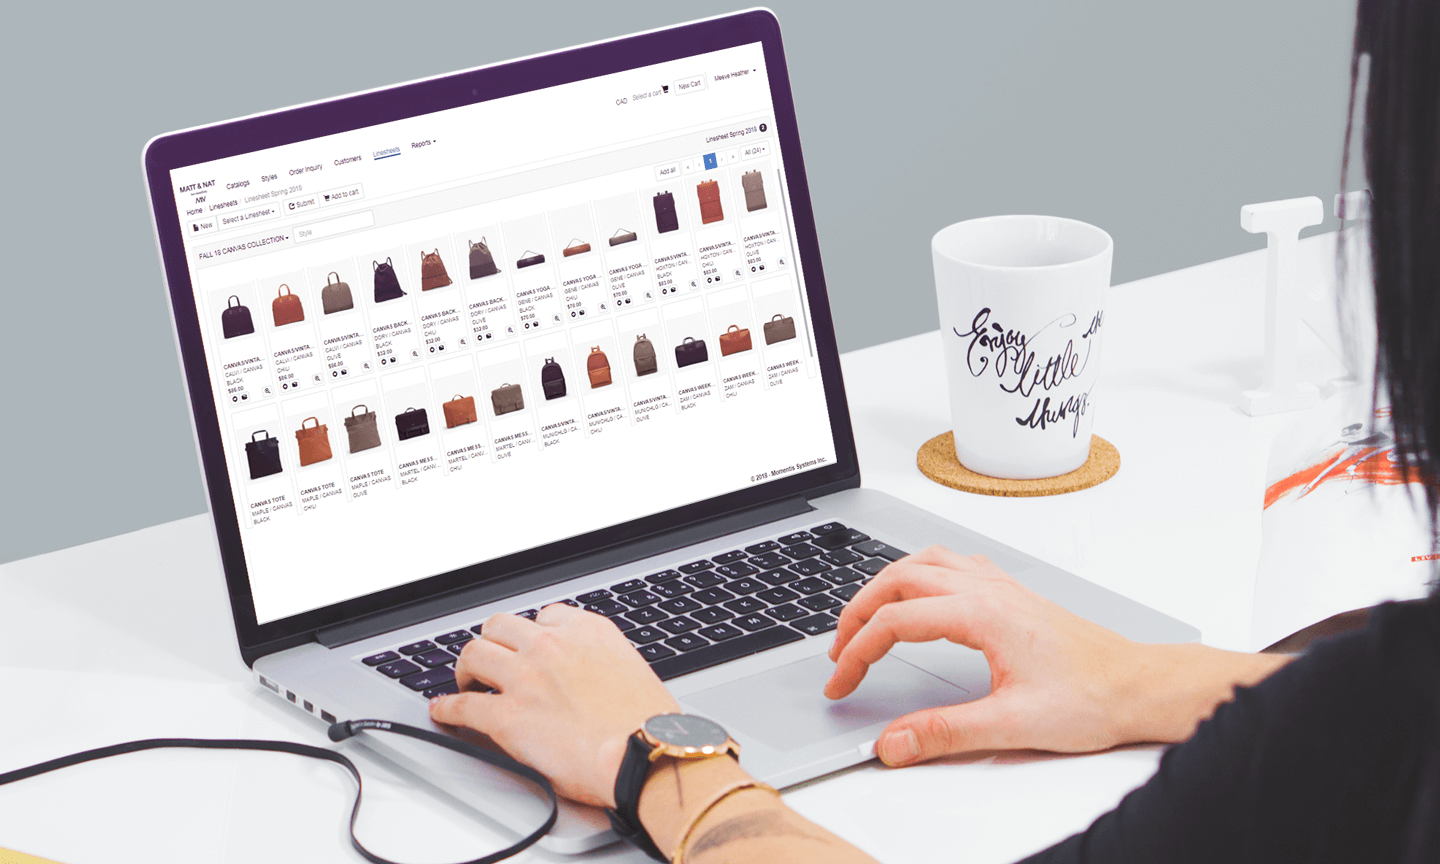 Momentis Fashion System screenshot: Users can access all of their business data from a centralized platform, including product, supply chain, warehouse and financial data